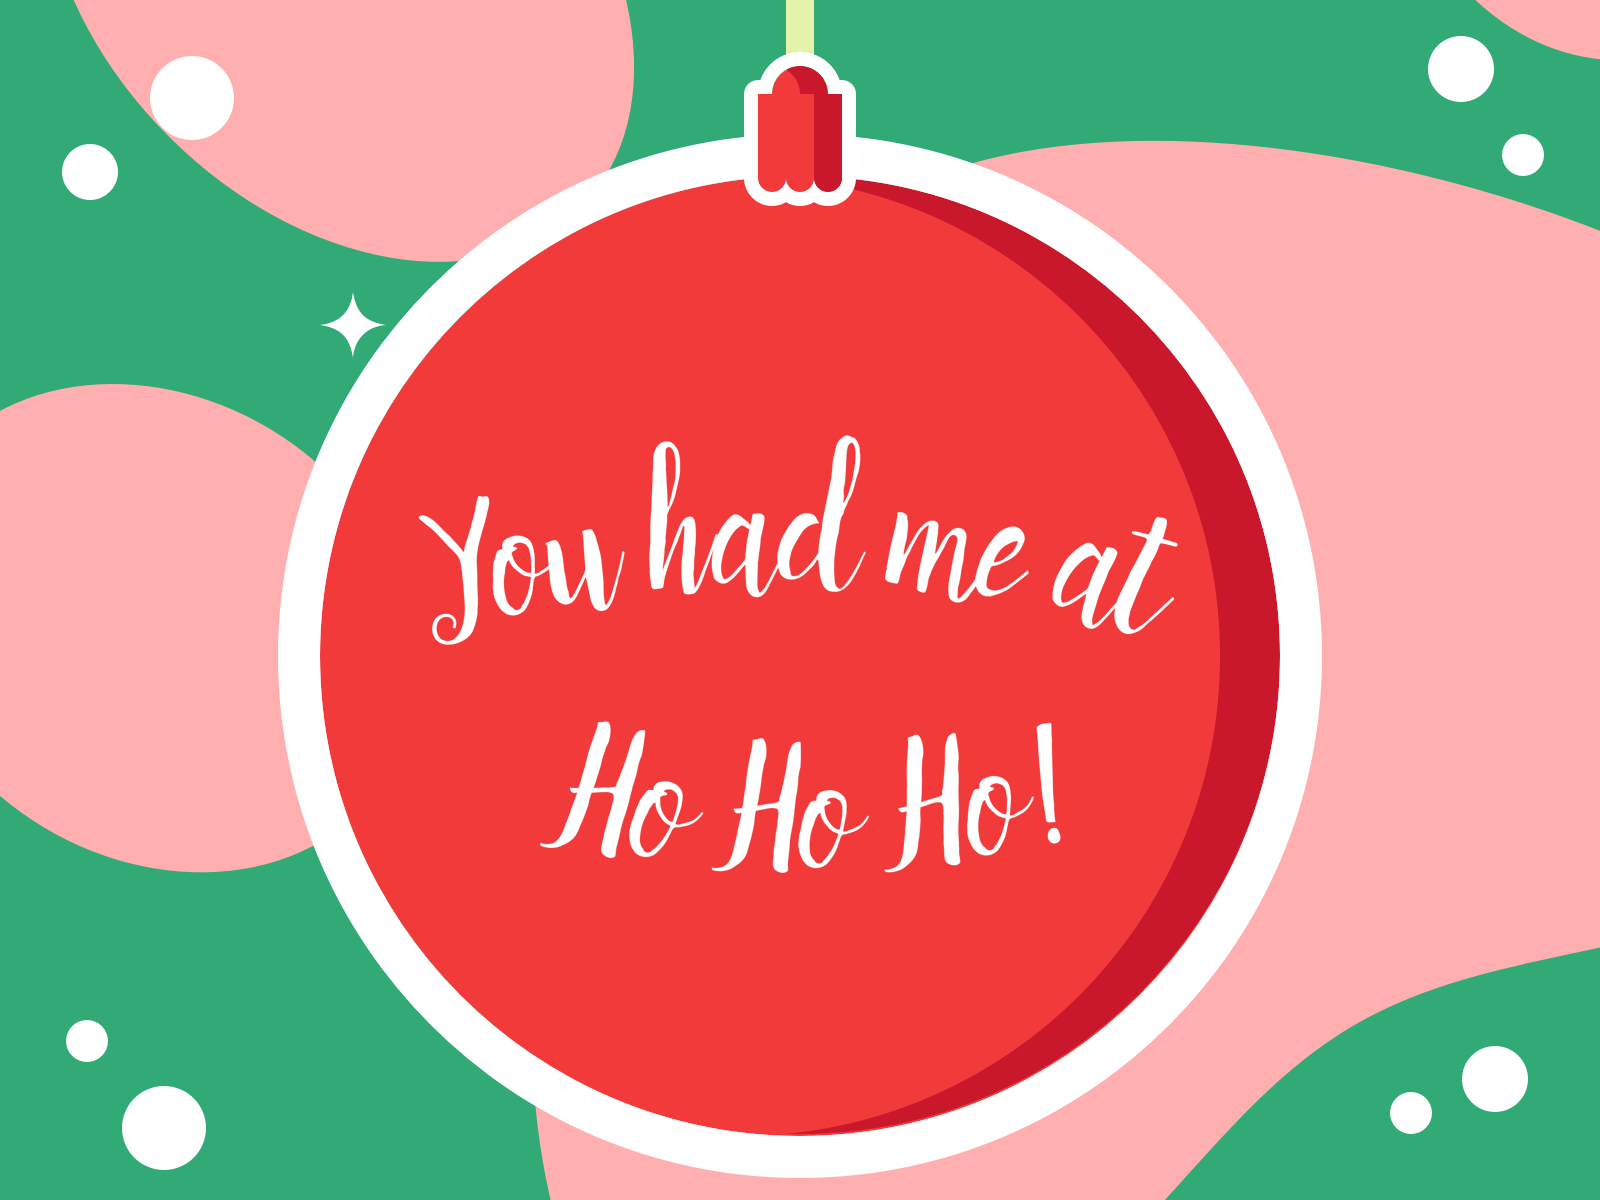 You had me at Ho Ho Ho!